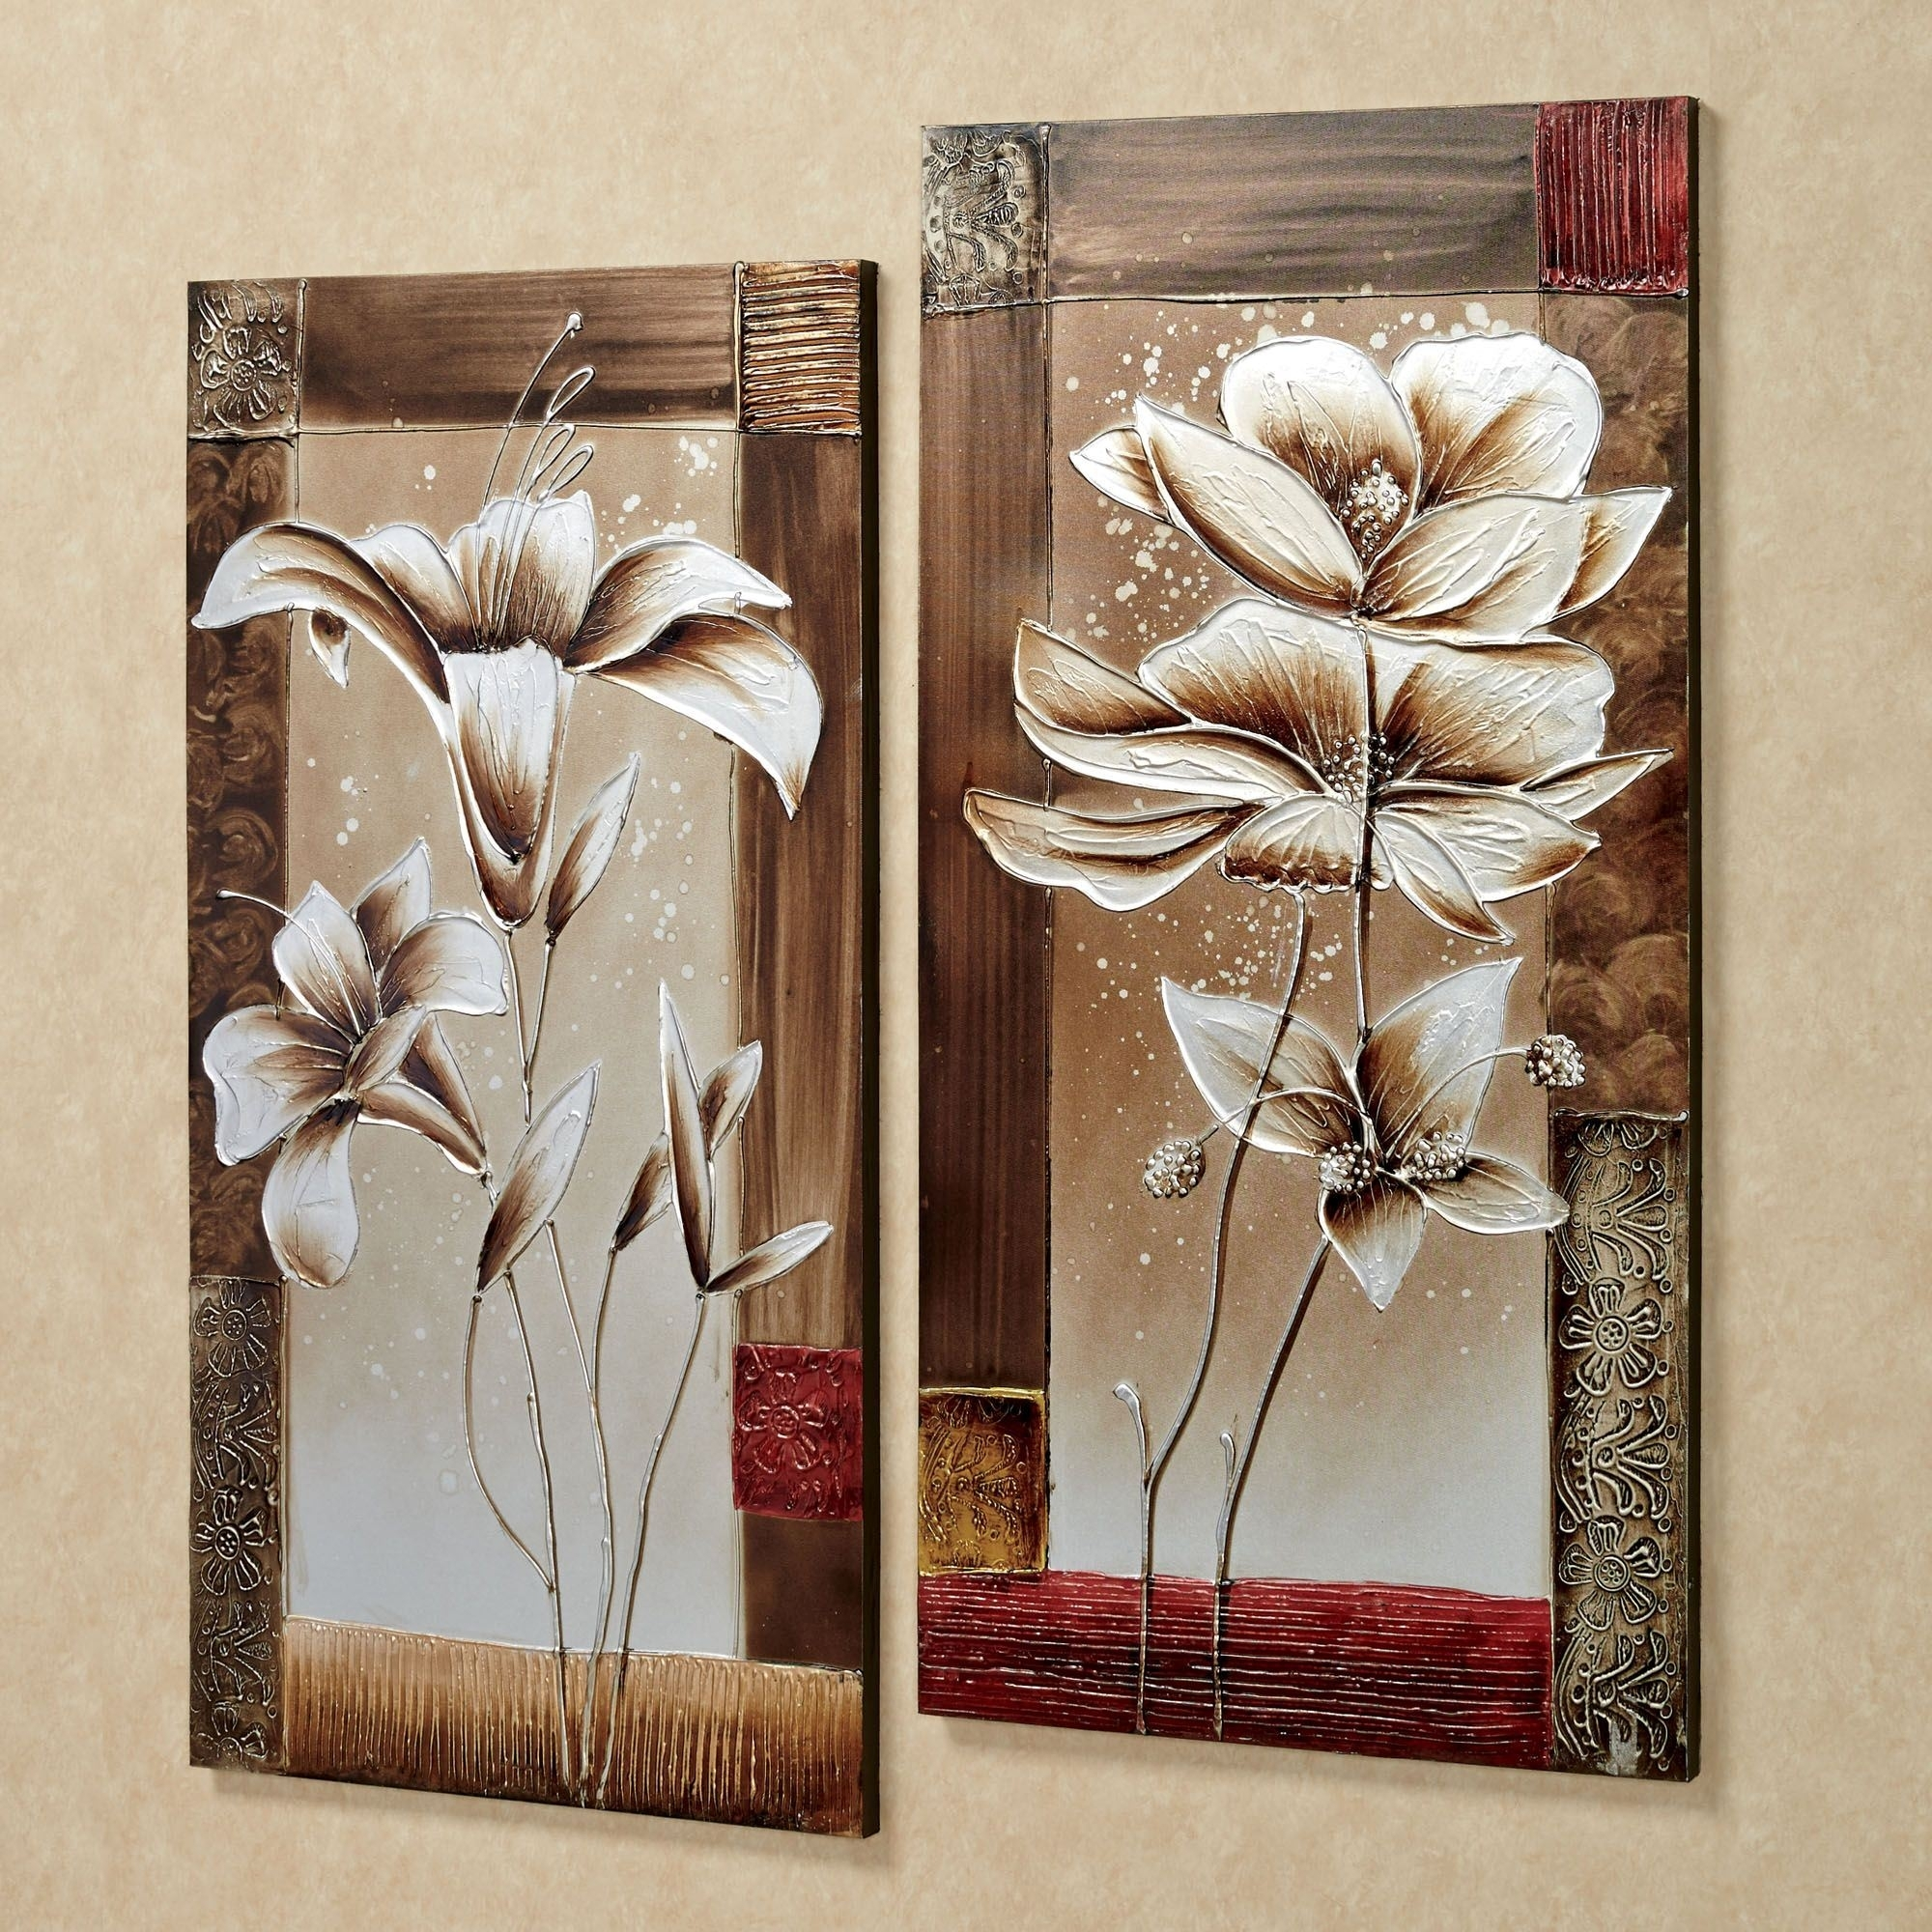 Petals Of Spring Floral Canvas Wall Art Set With Regard To Newest Wall Art Sets (View 2 of 15)